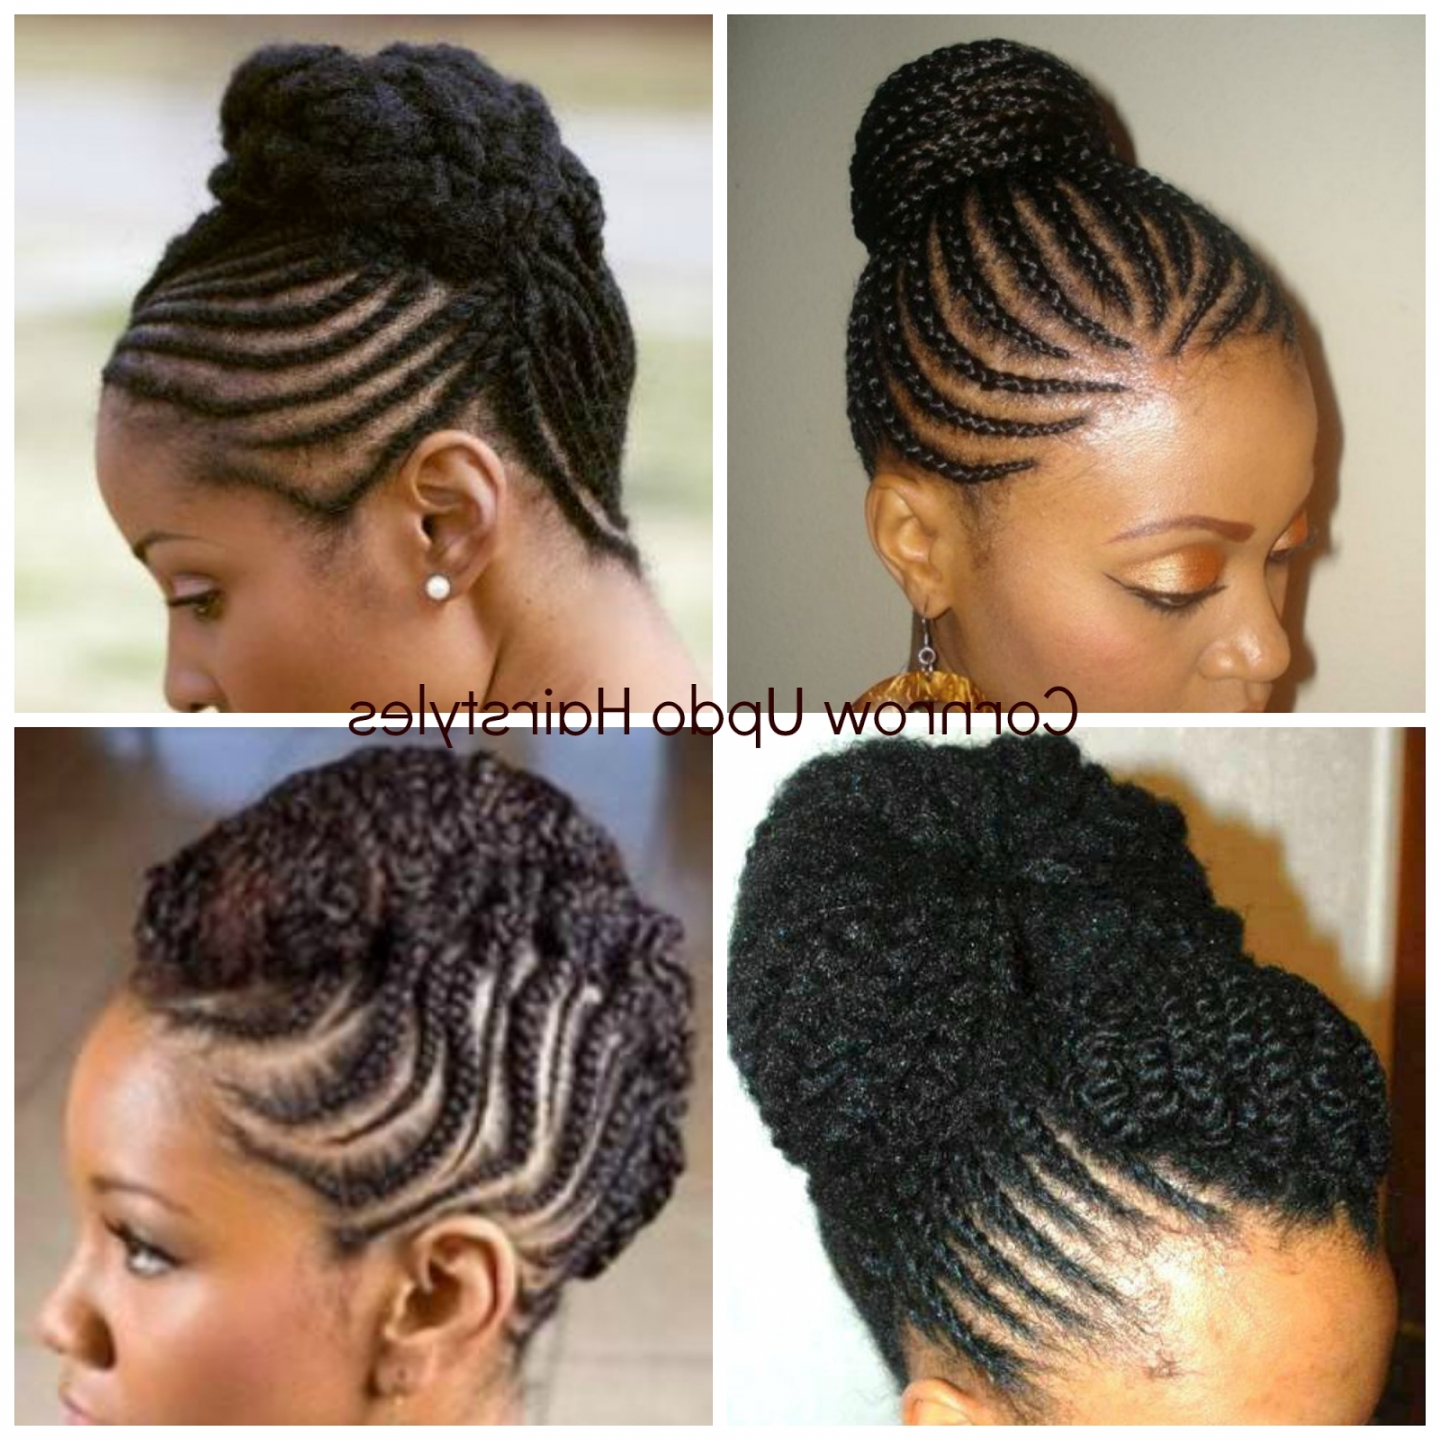 Corn Rolls Hair Style Cornrow Hairstyles Updo Black Hair | Latest Regarding Elegant Cornrow Updo Hairstyles (View 7 of 15)